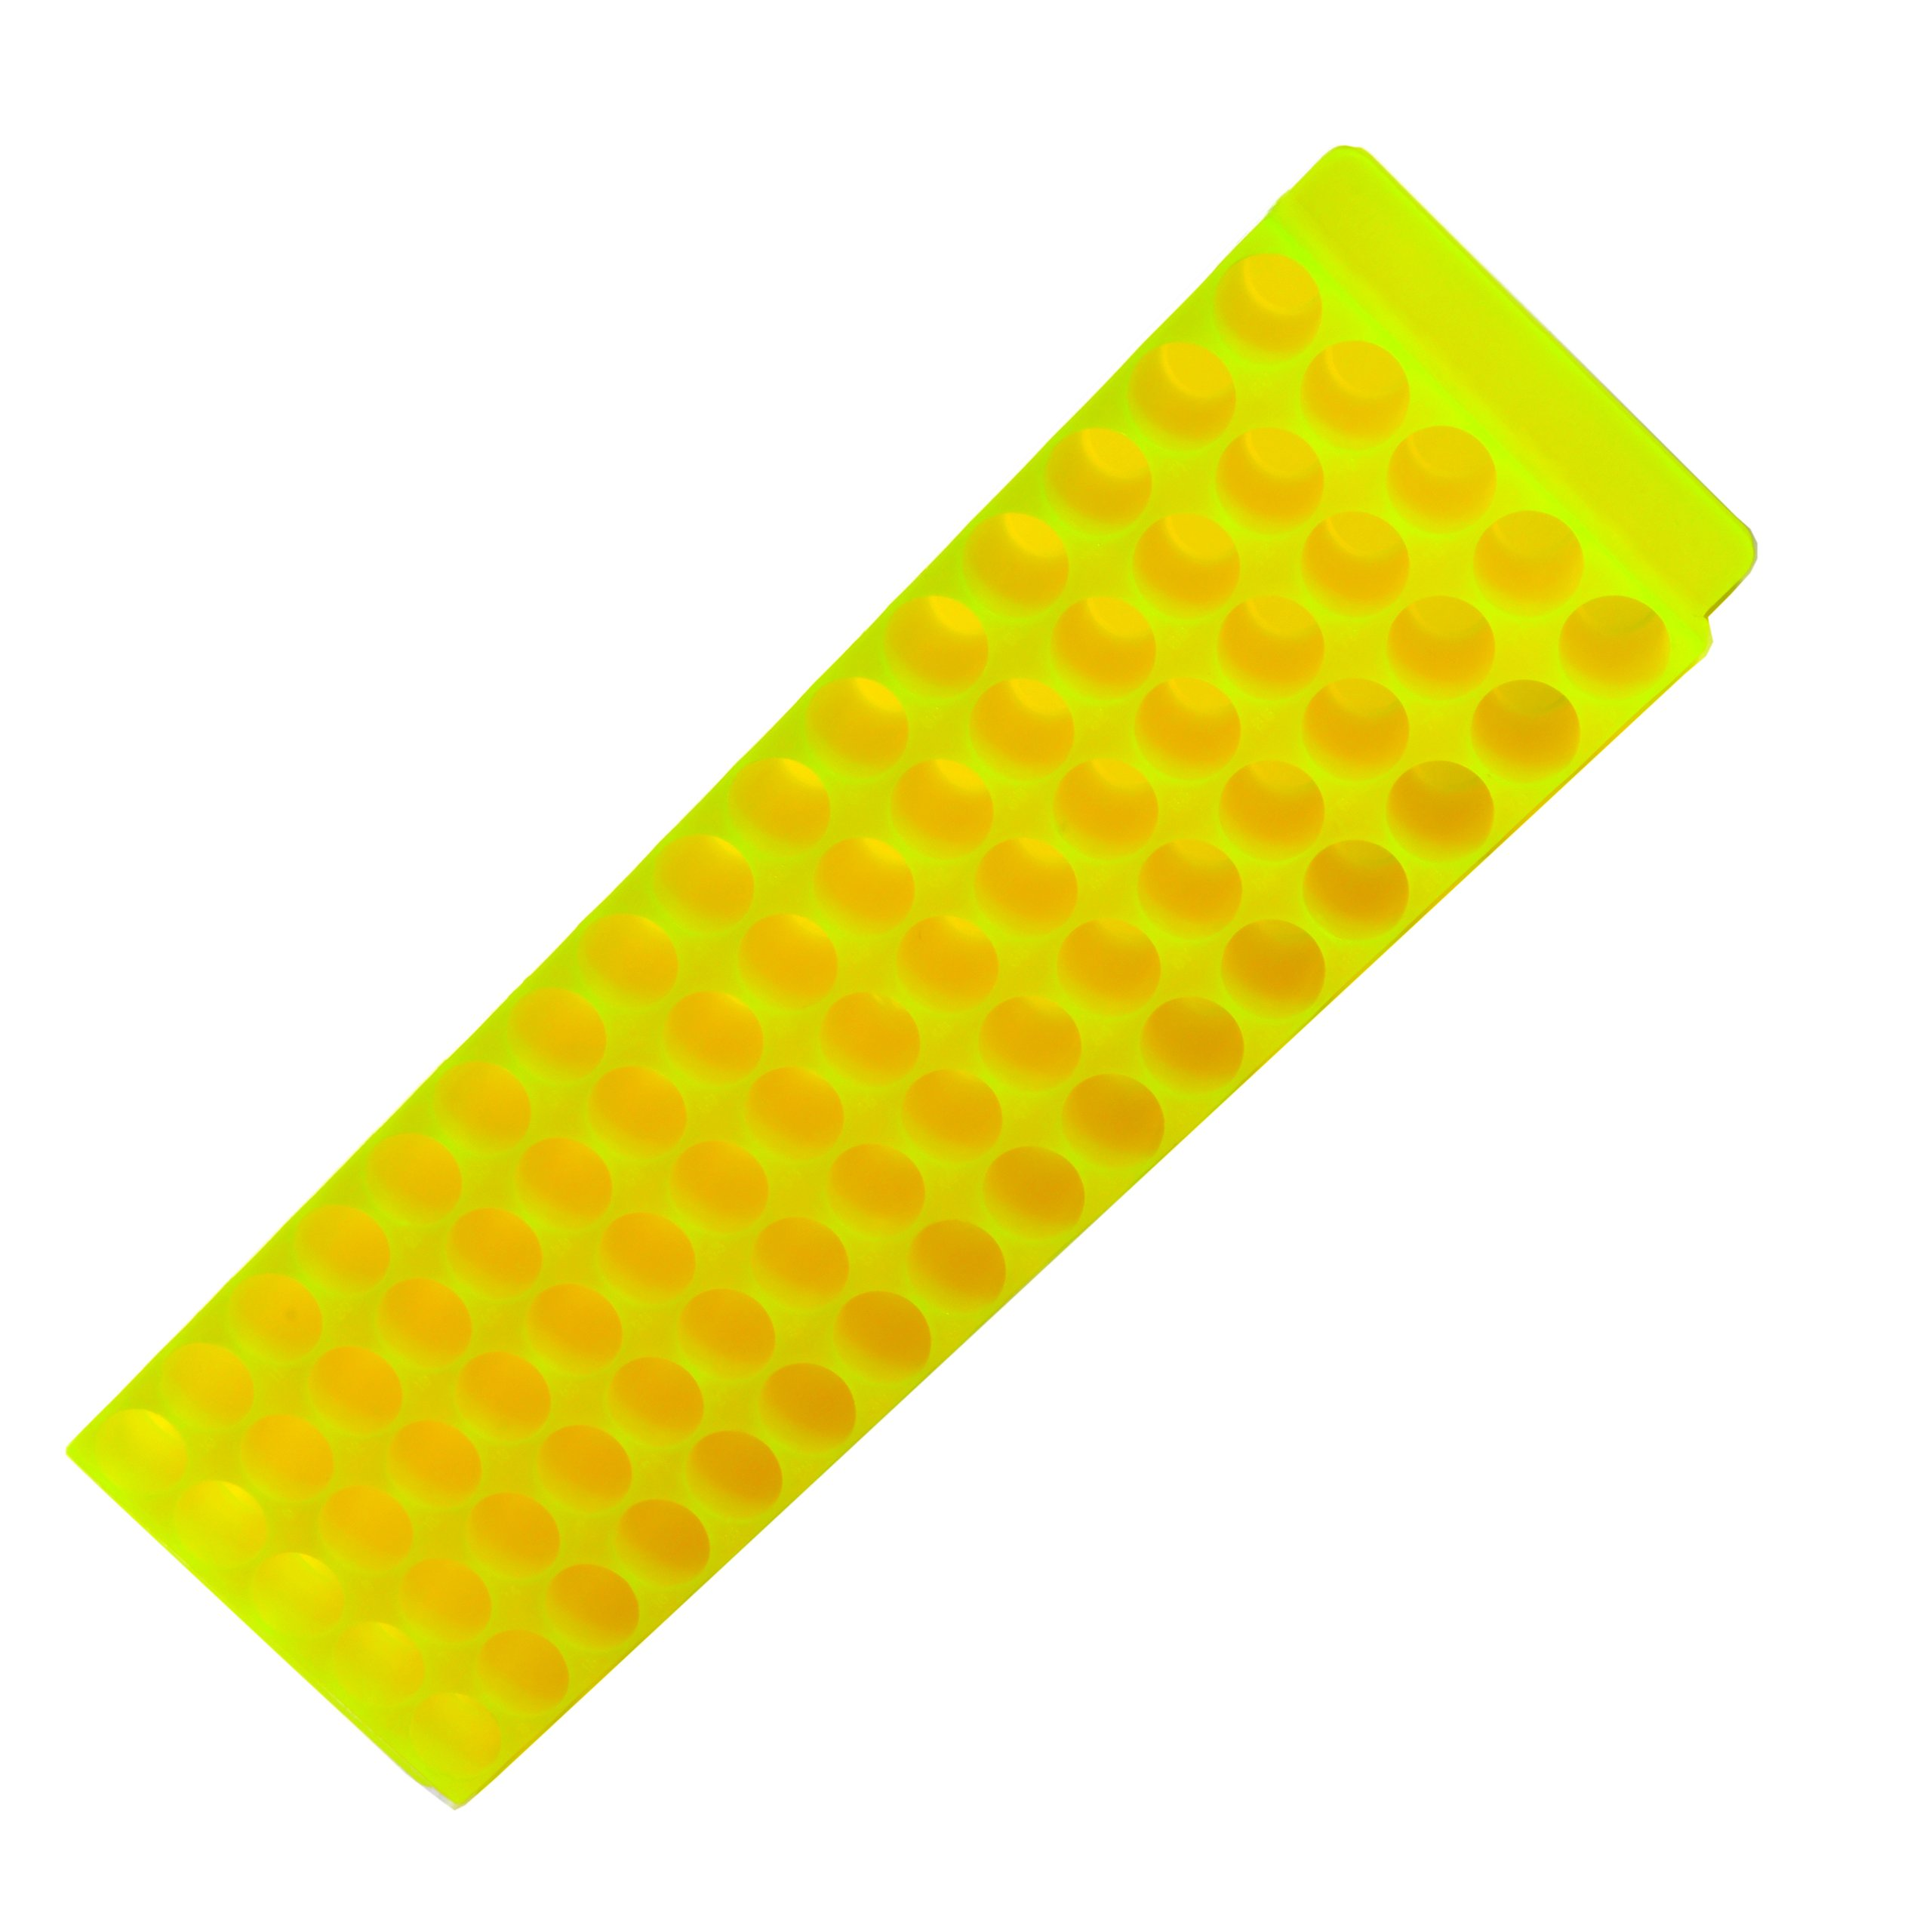 Bio Plas 0074 Polypropylene 80 Well Microcentrifuge Tube Rack, Autoclavable, Fluorescent Yellow (Pack of 5)